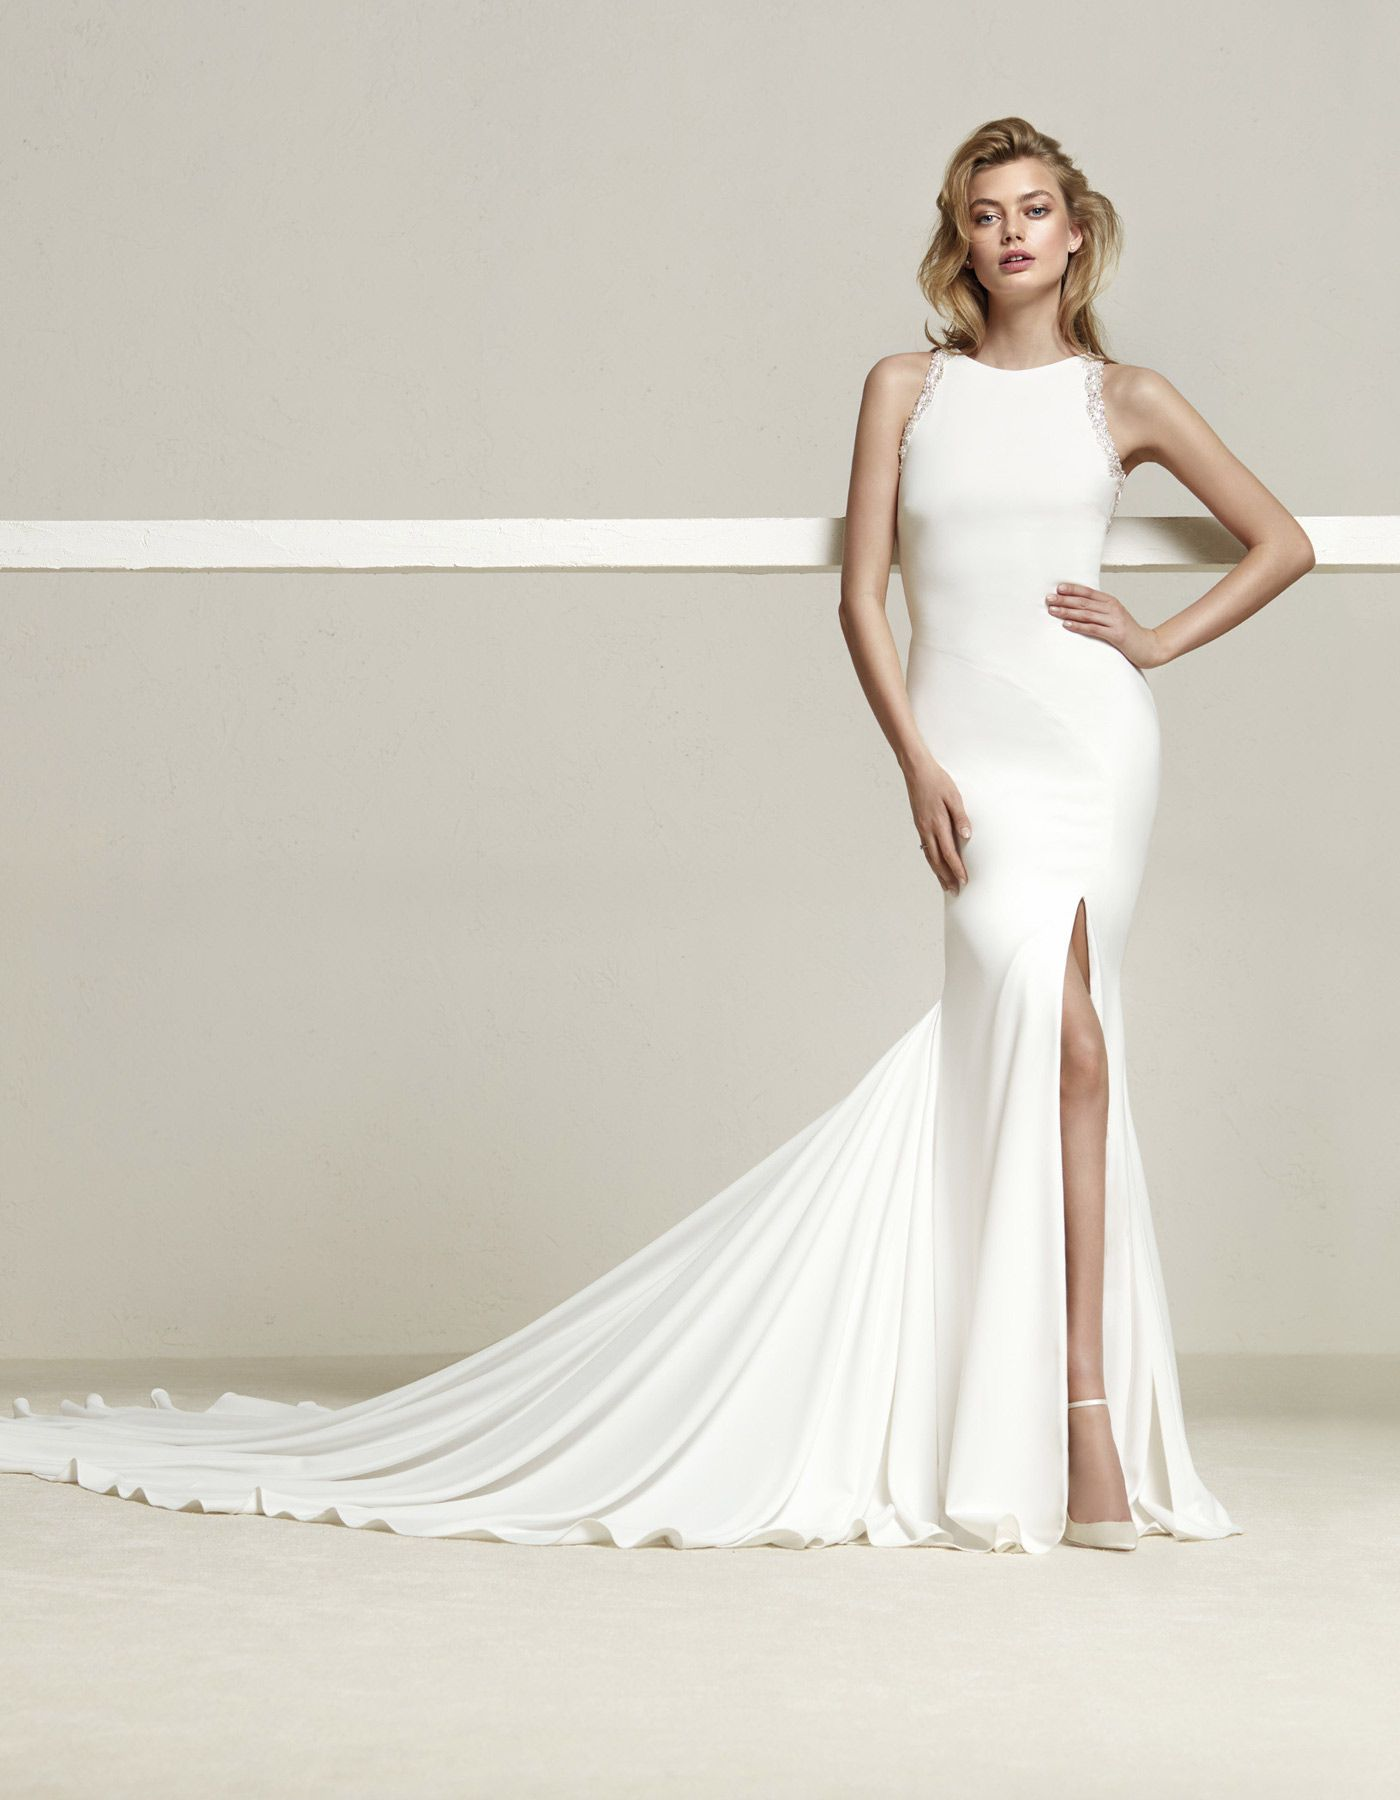 Elegant wedding dress with leg split  0c7e7f07ab